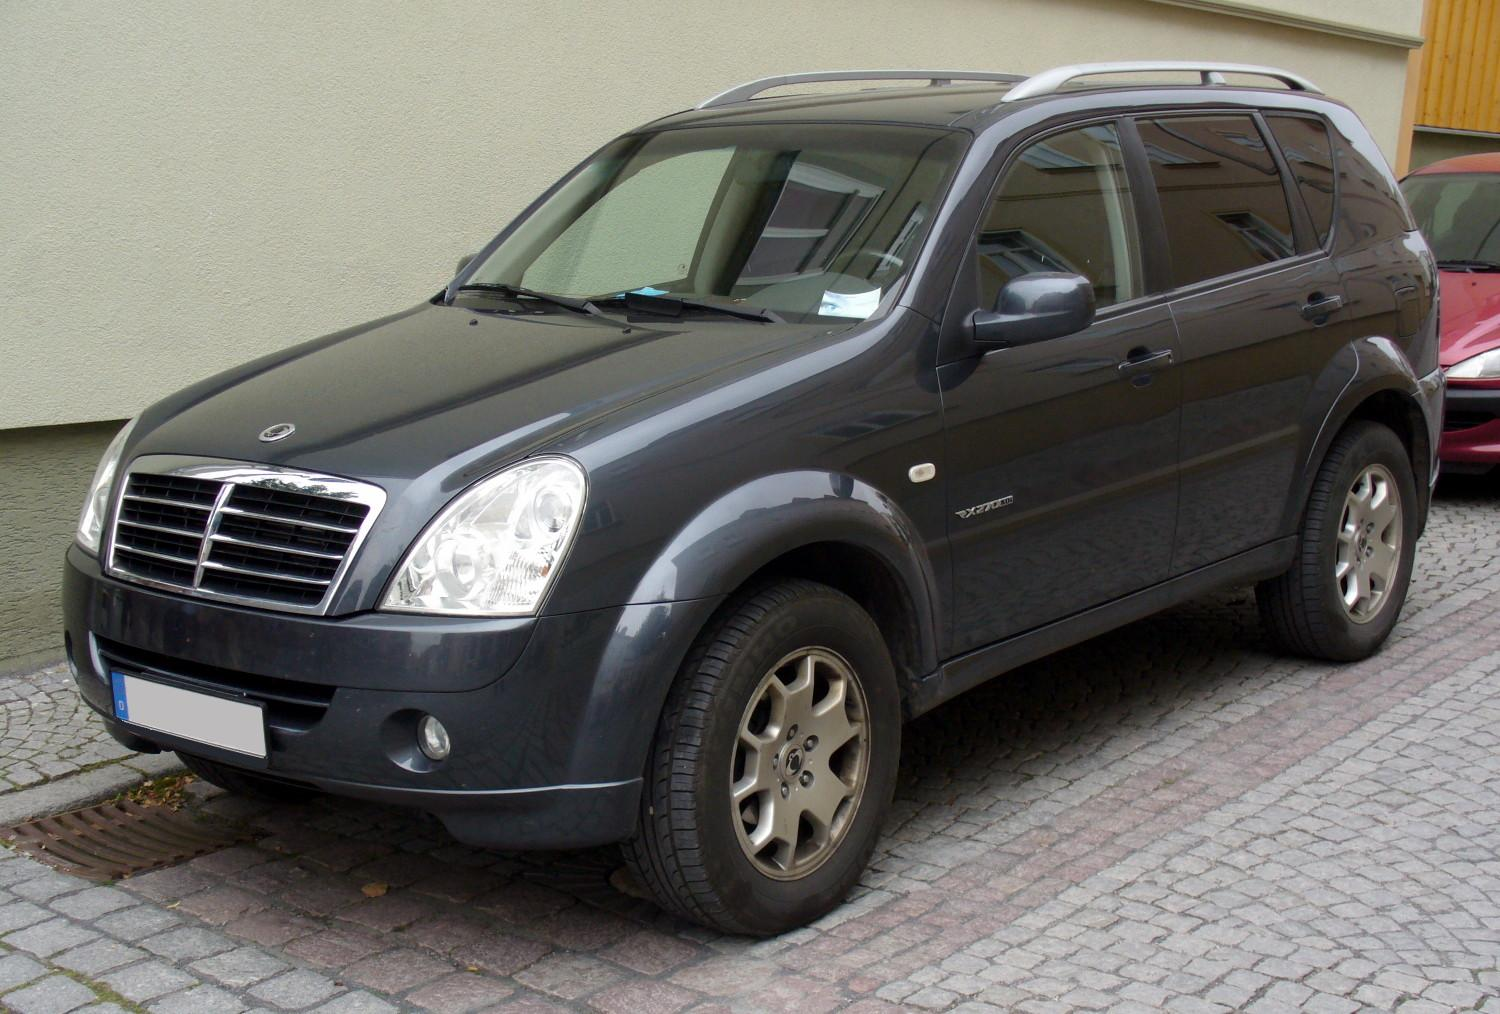 2011 Ssangyong Musso #7